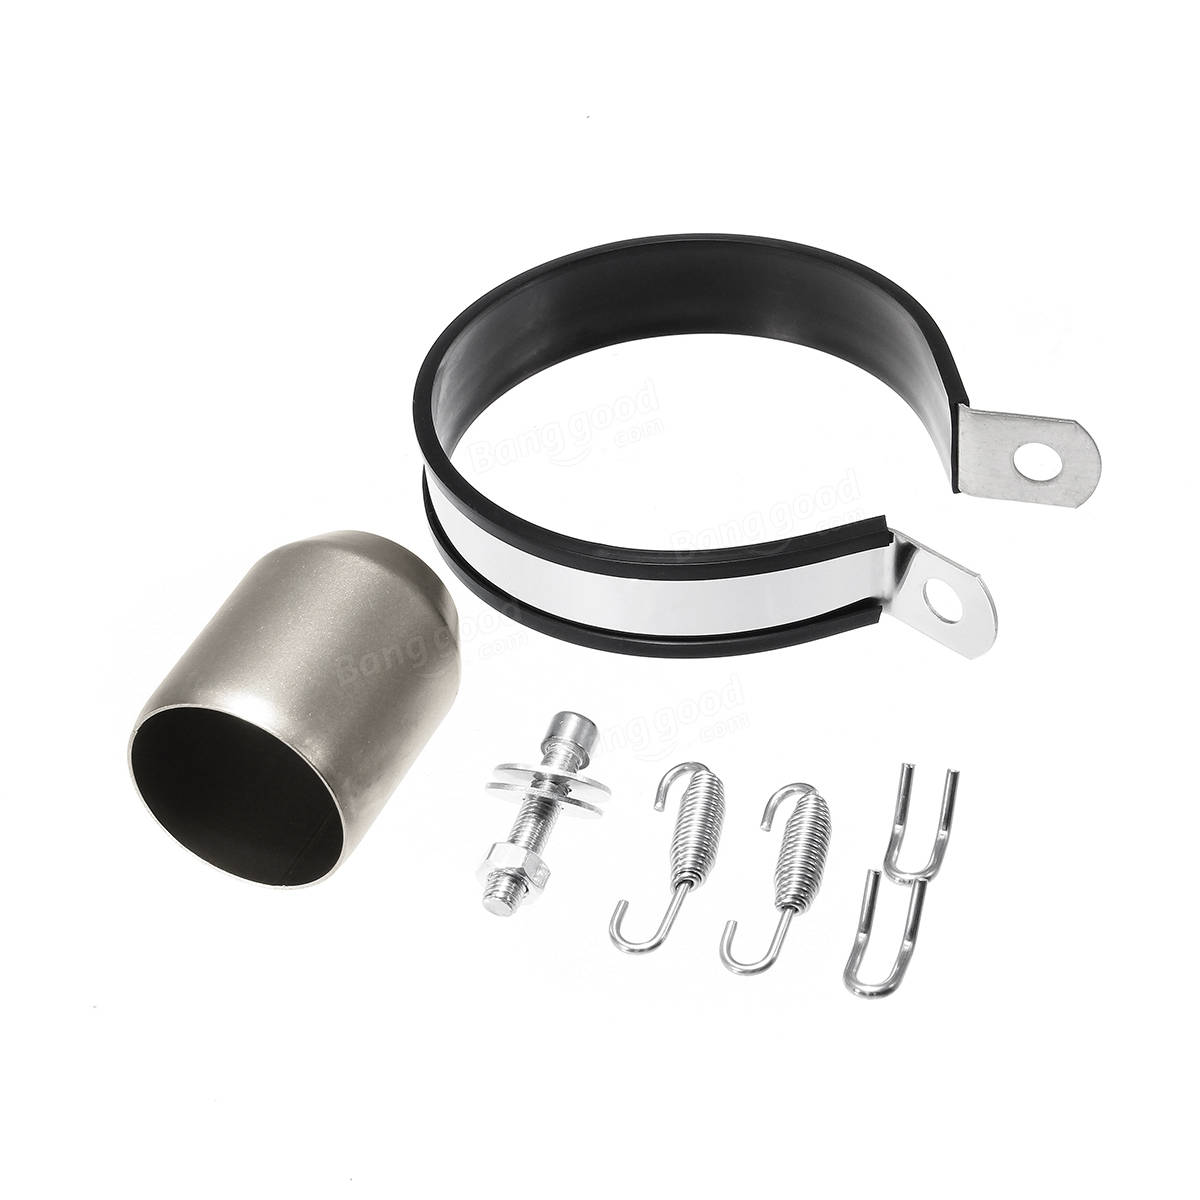 38-51mm Exhaust Muffler Pipe with Silencer Universal Motorcycle Stainless Steel